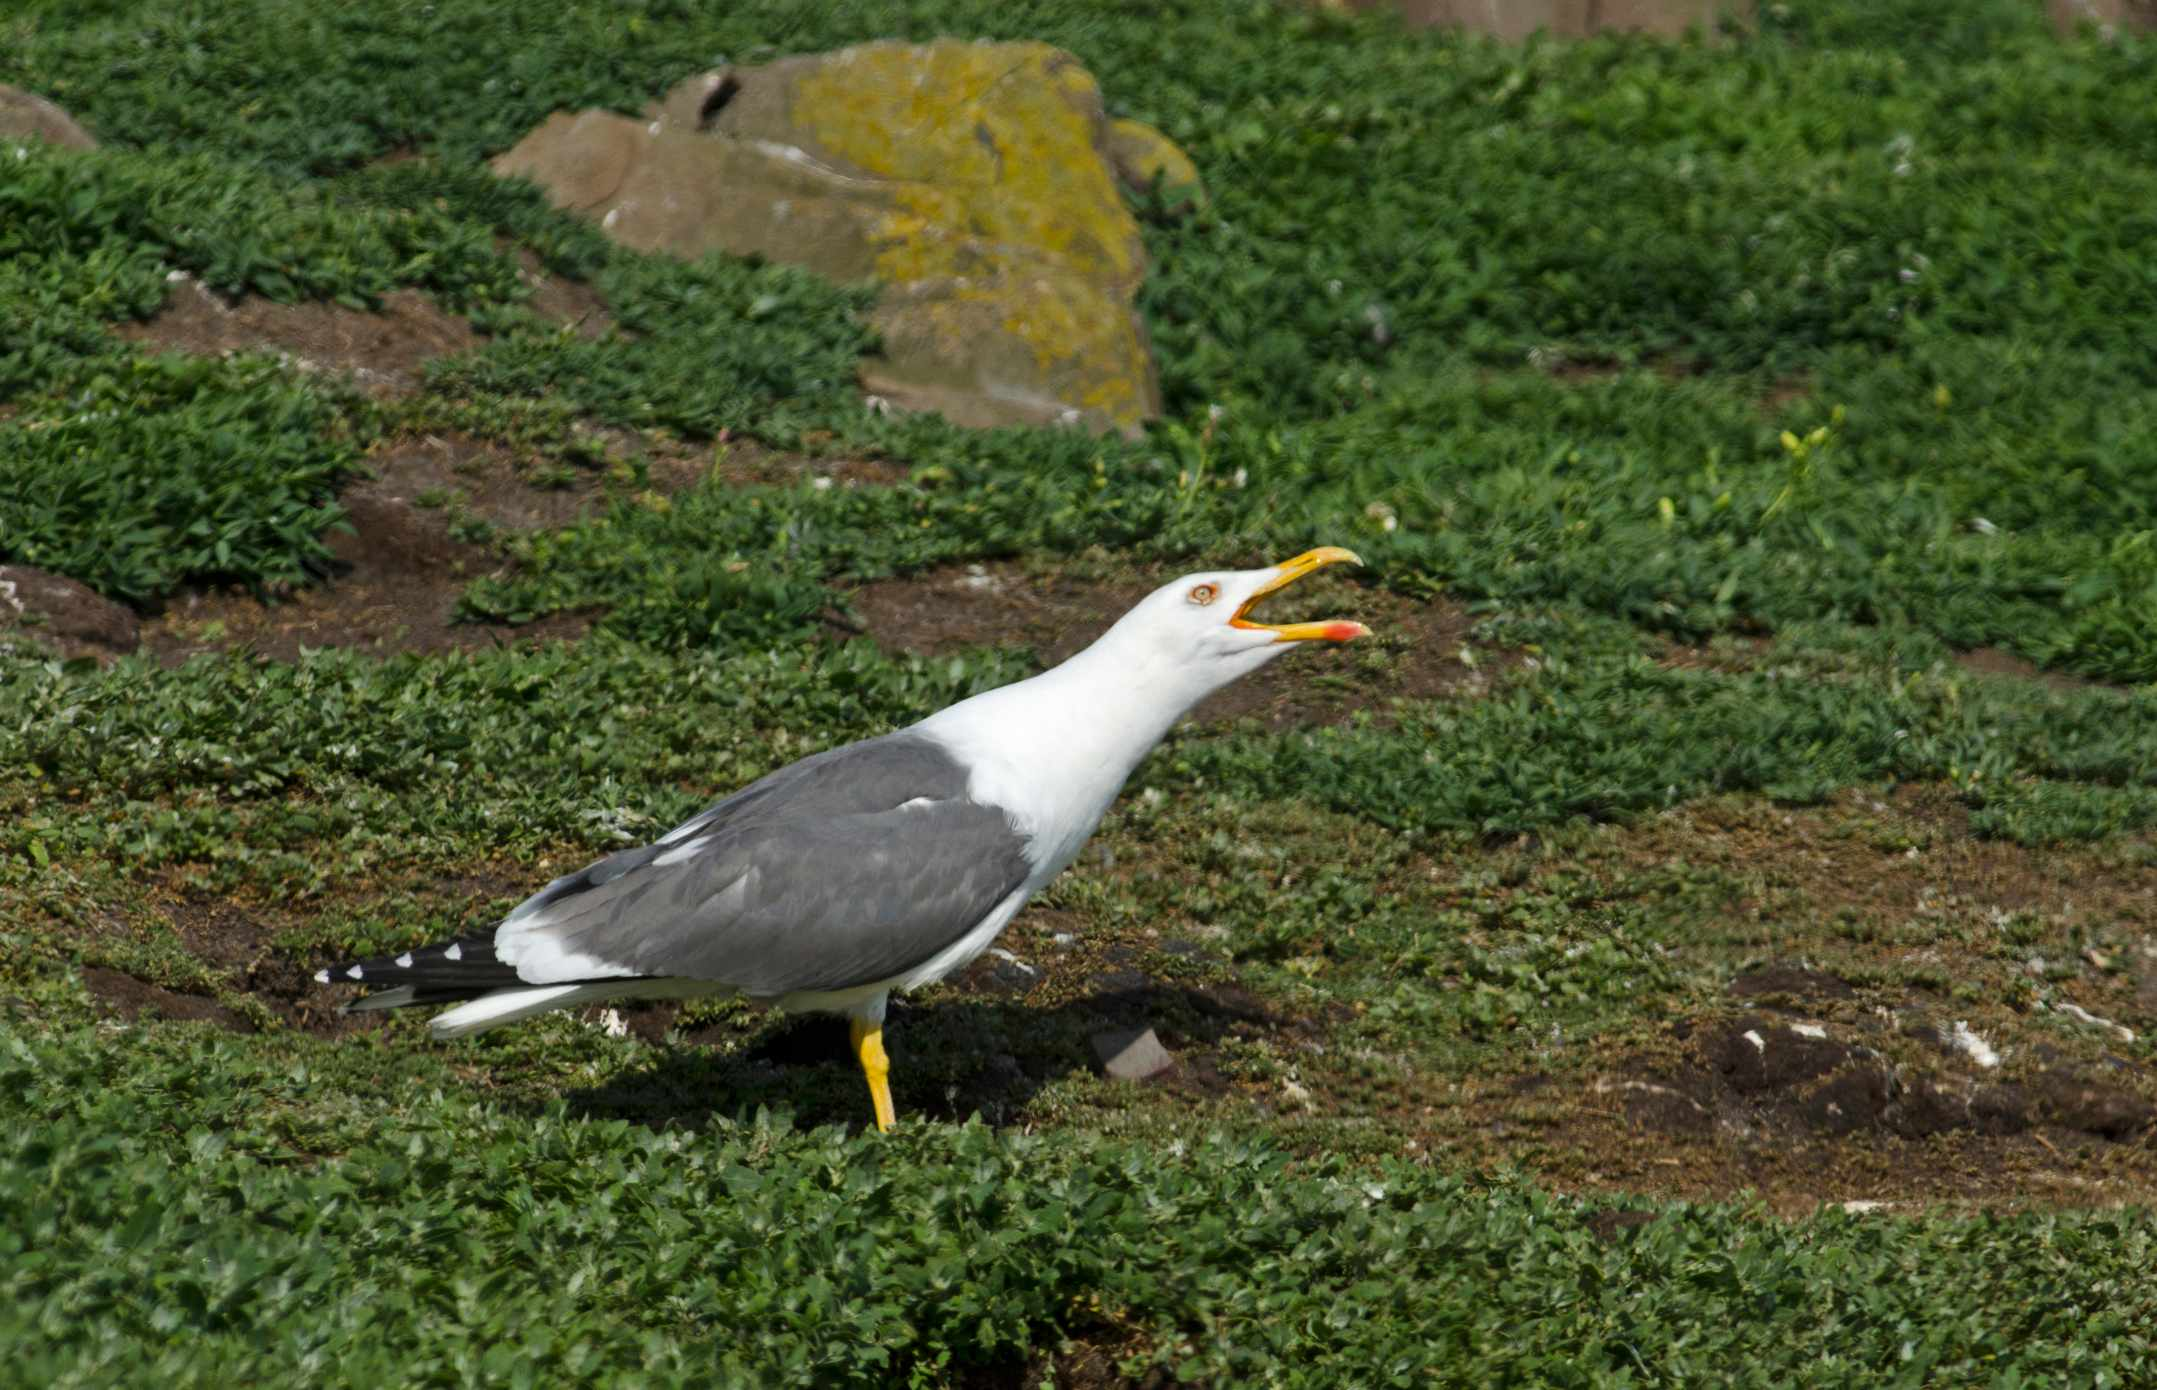 Lesser black-backed gull calling on the Farne Islands. © David Tipling/Getty